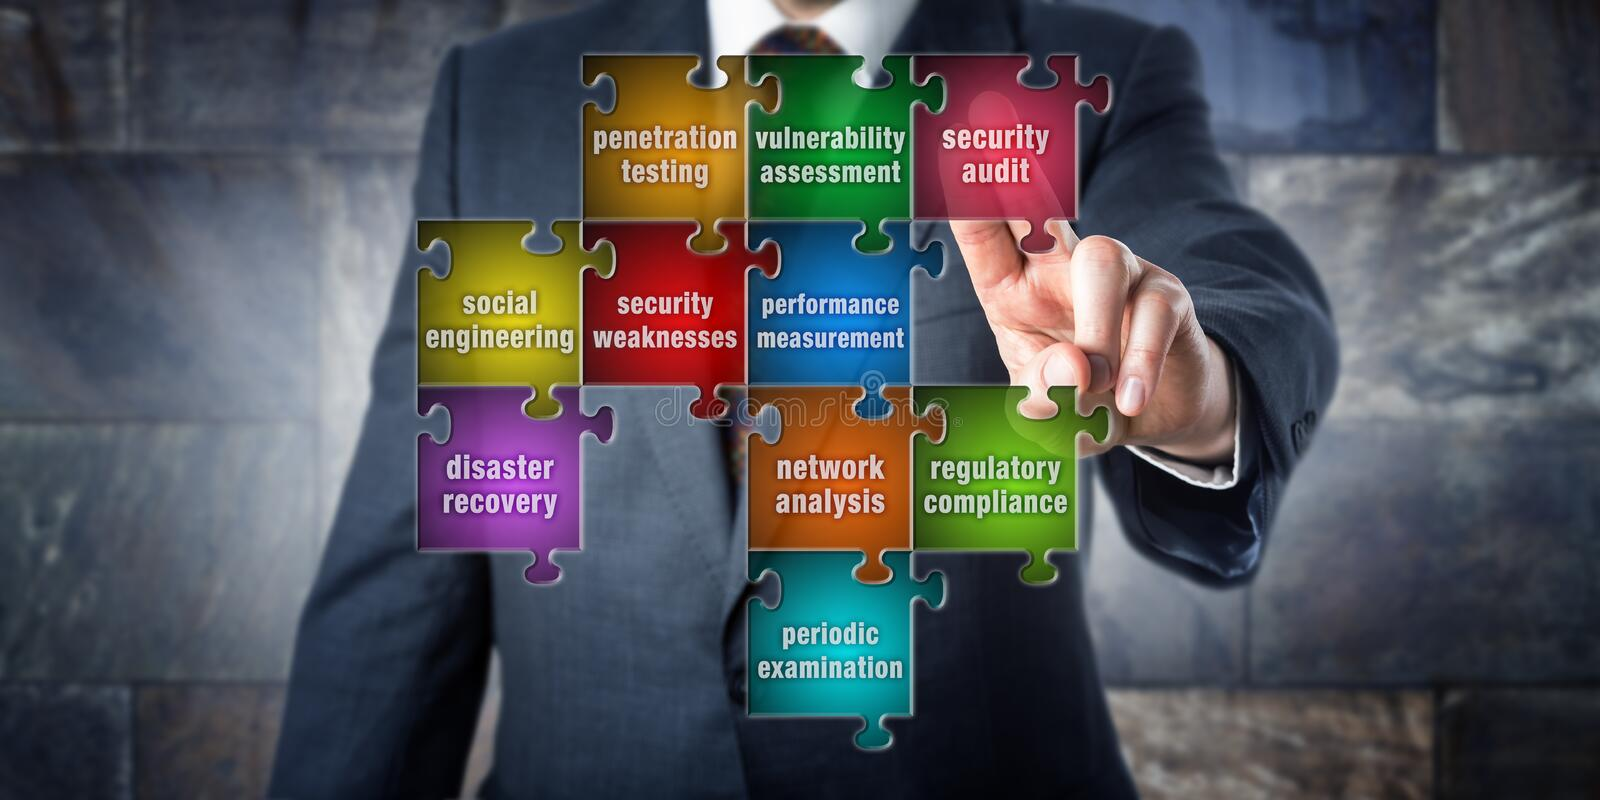 IT Manager Touching Security Audit In A Puzzle. IT manager is doing a virtual puzzle made of pieces labeled with security audit terminology. Information systems